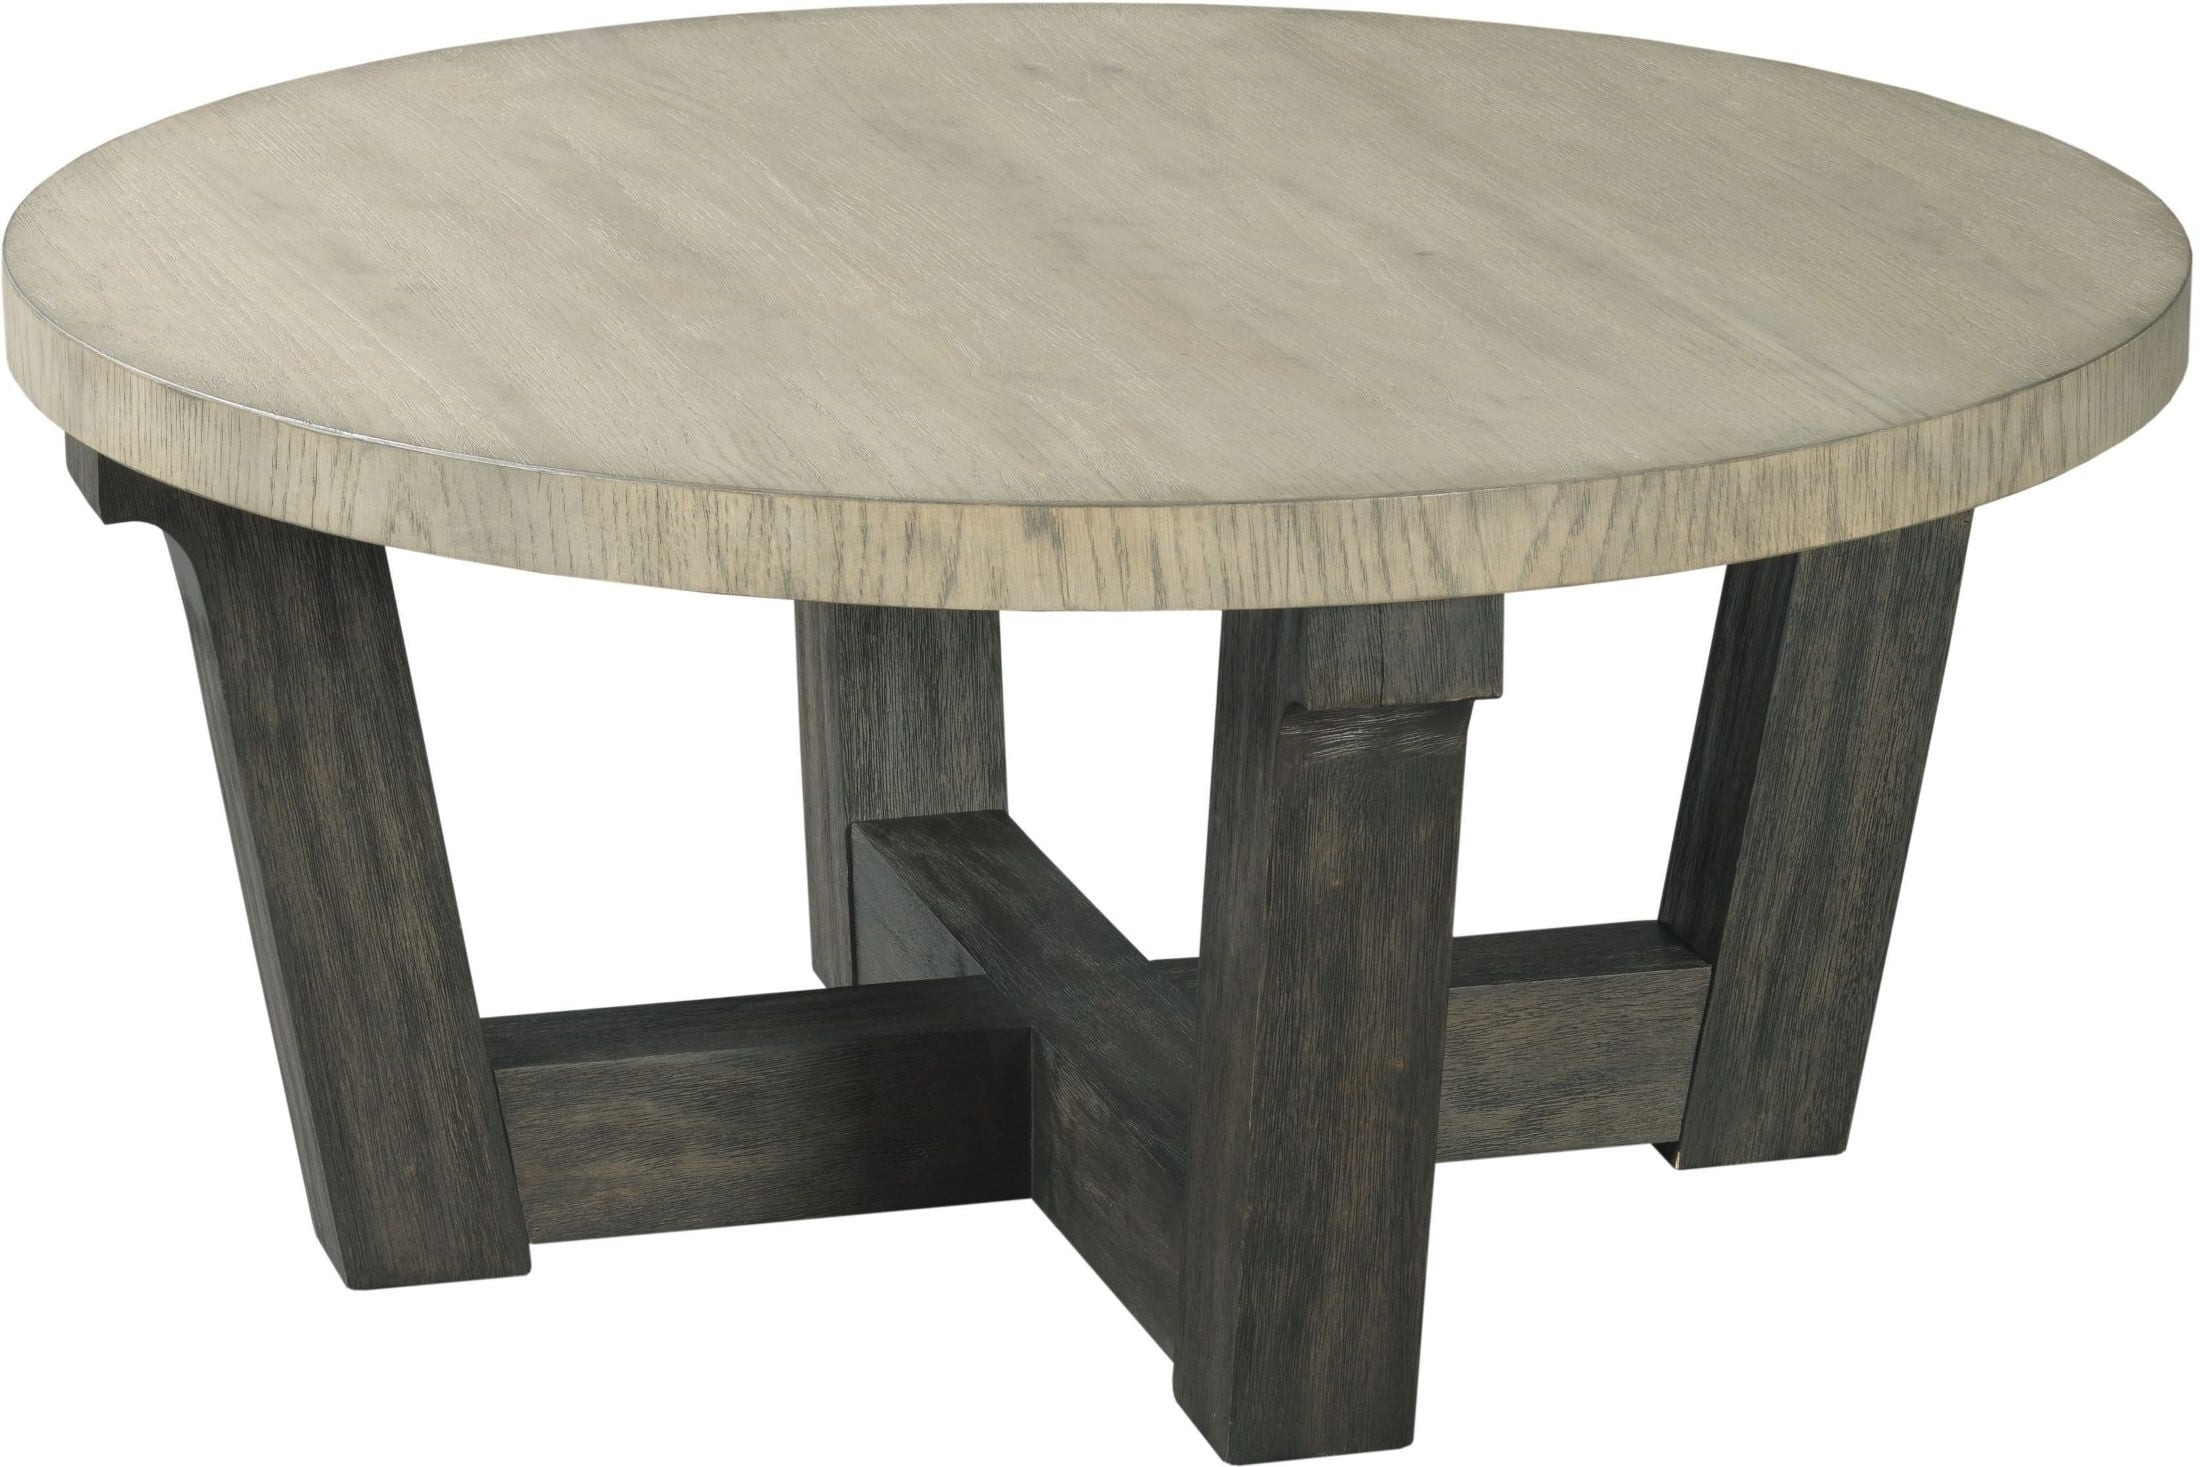 Well Known Blanton Round Cocktail Tables With Regard To The Beckham Dark Sable Base Round Cocktail Table From Hammary (View 13 of 20)